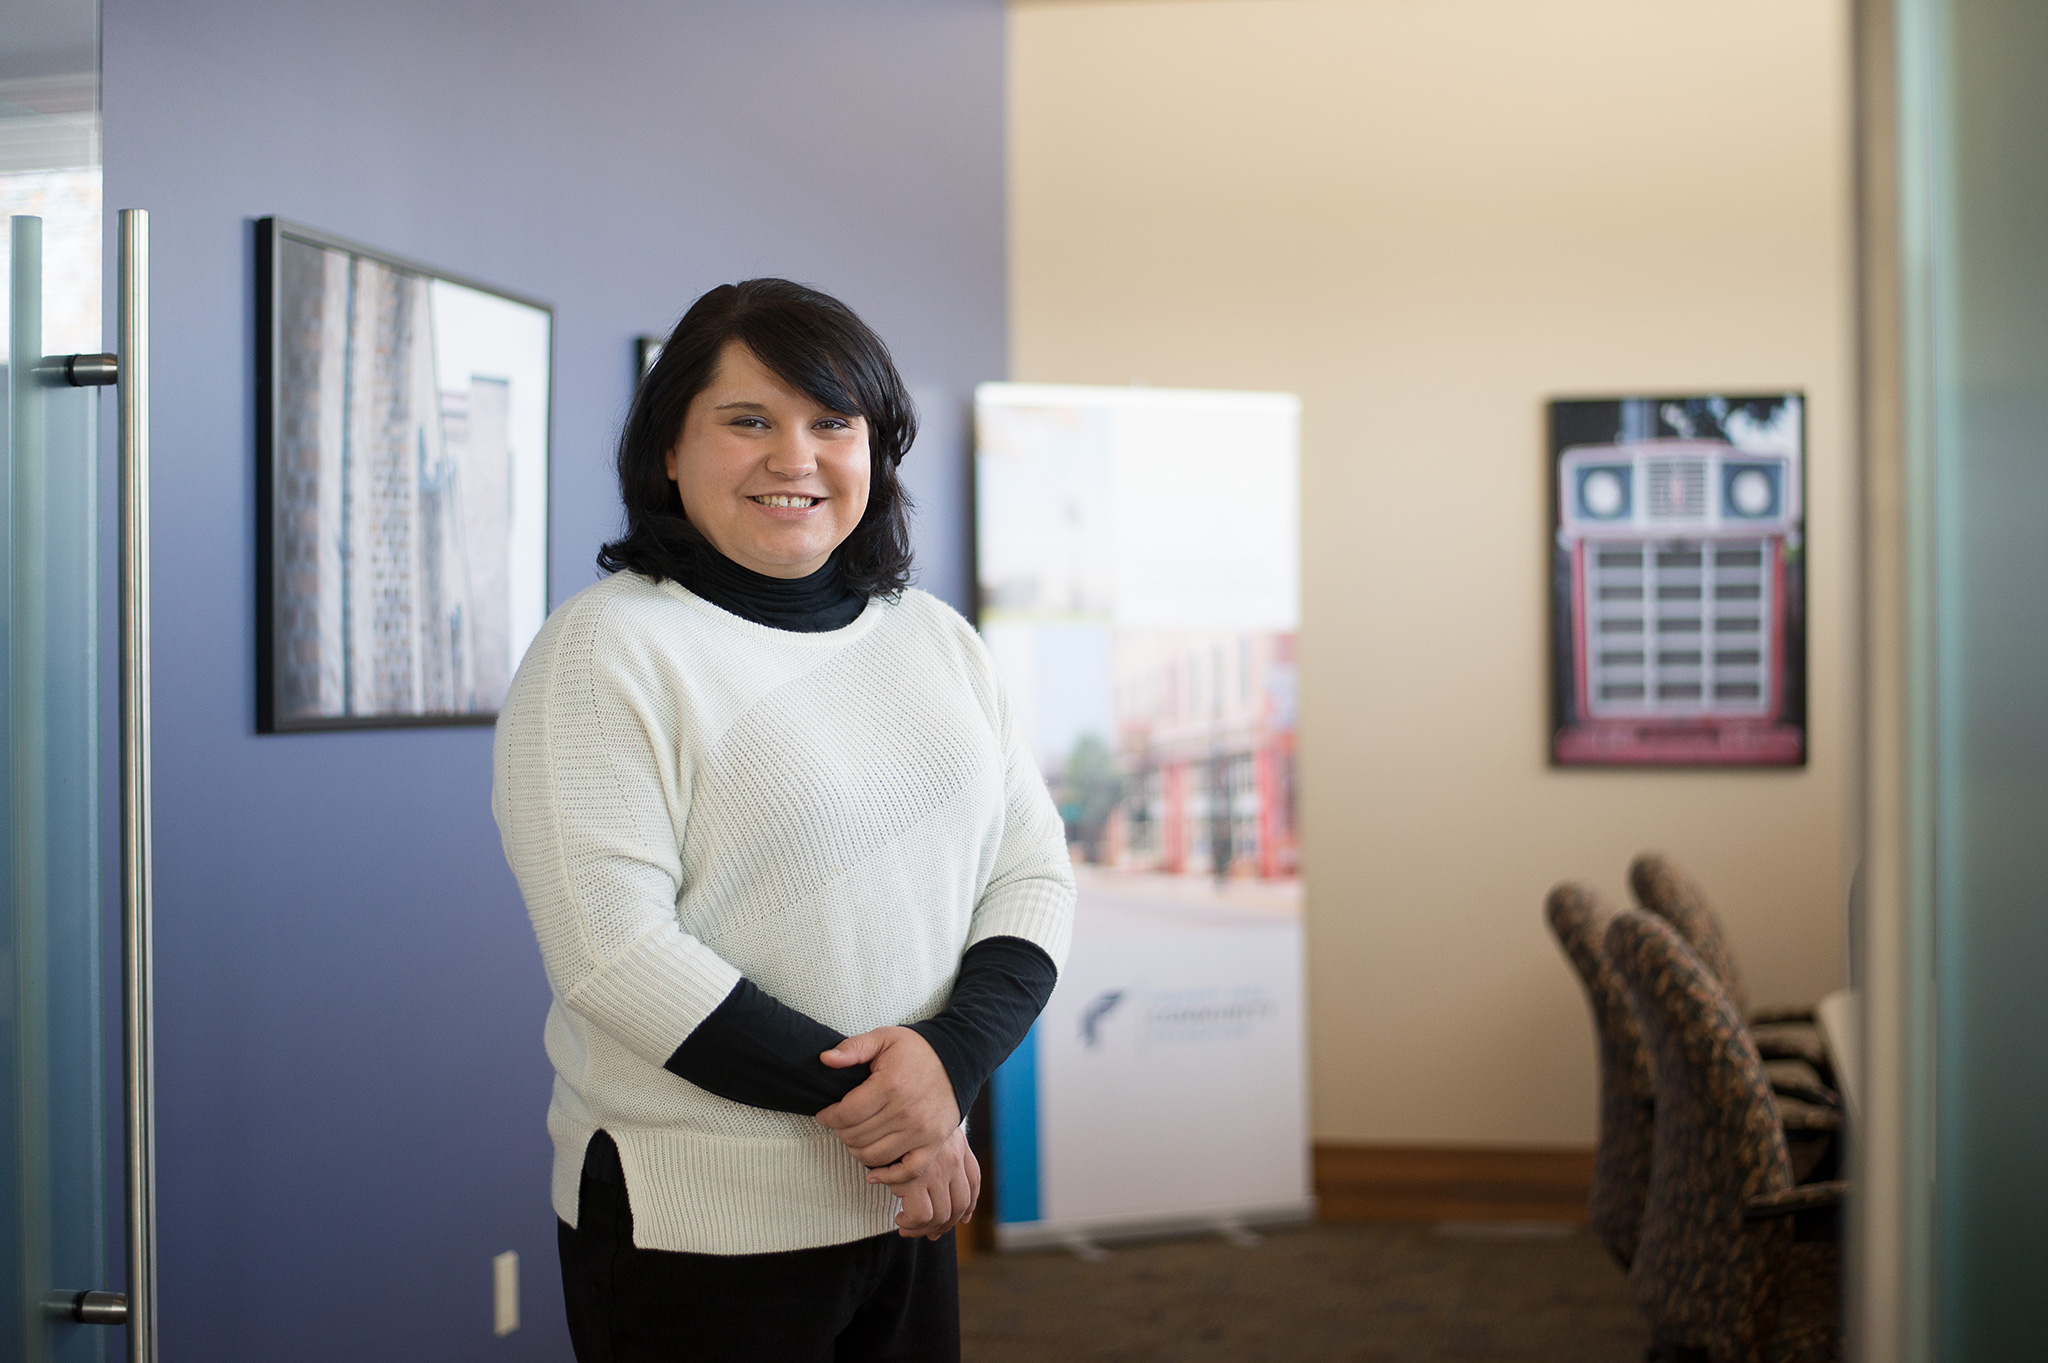 Maria Gonzalez Selected as Foundation Manager